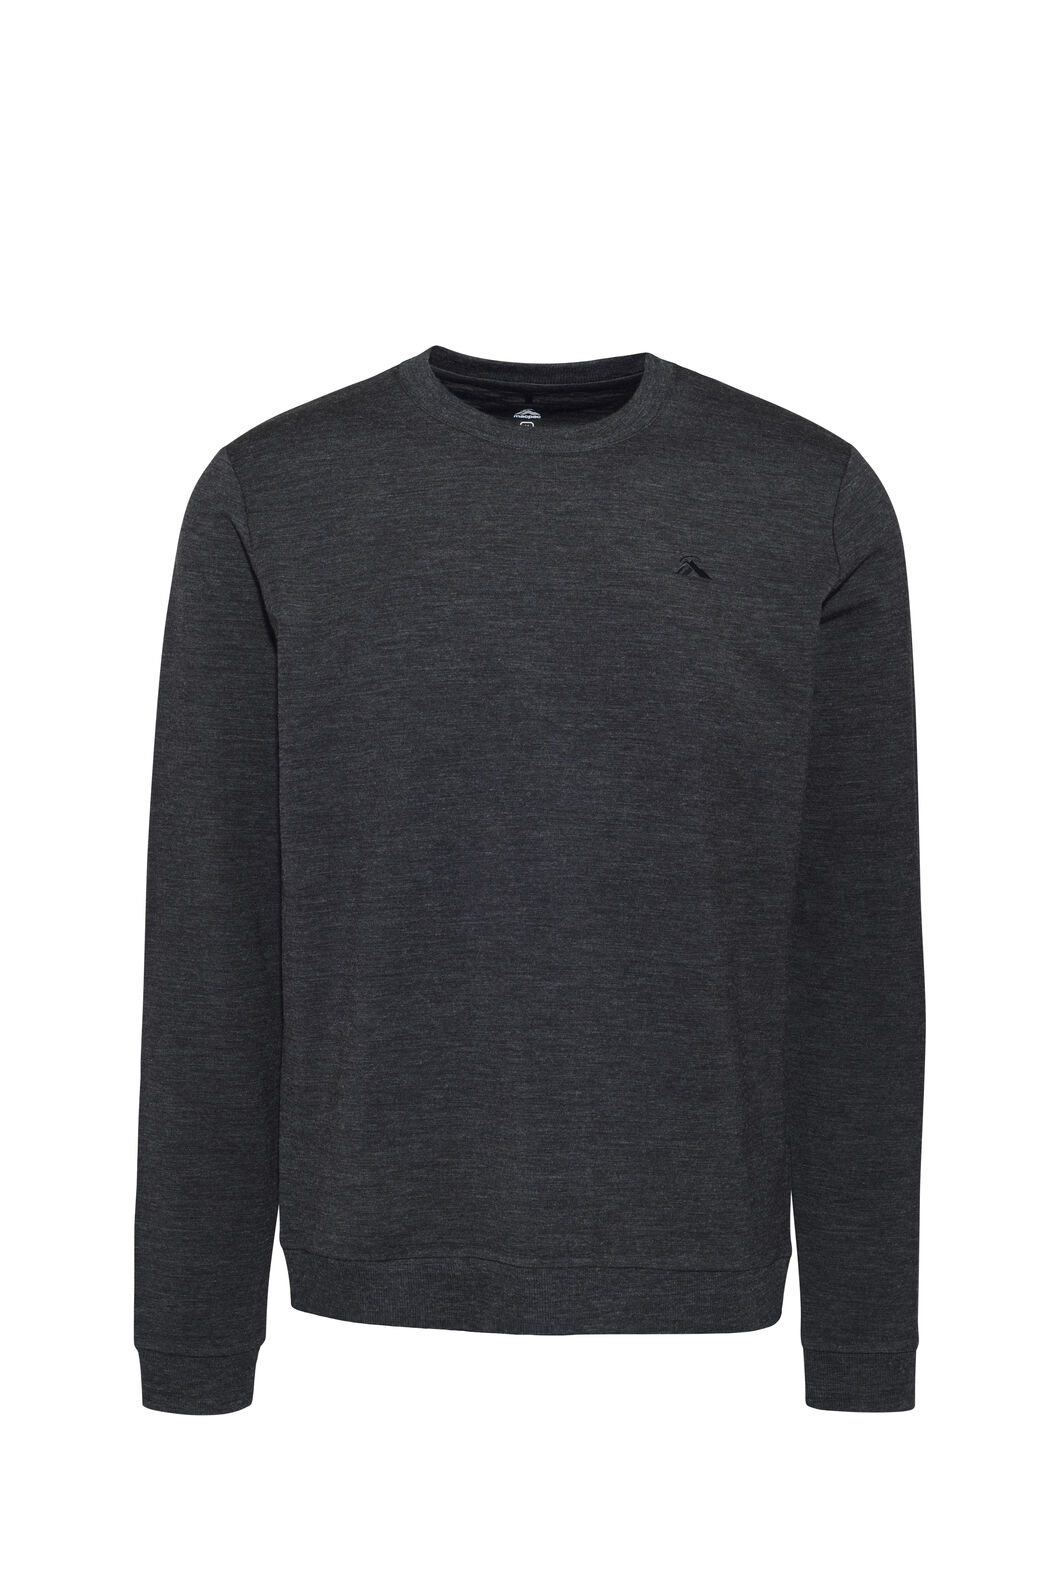 Macpac 280 Merino Long Sleeve Crew — Men's, Charcoal Marle, hi-res